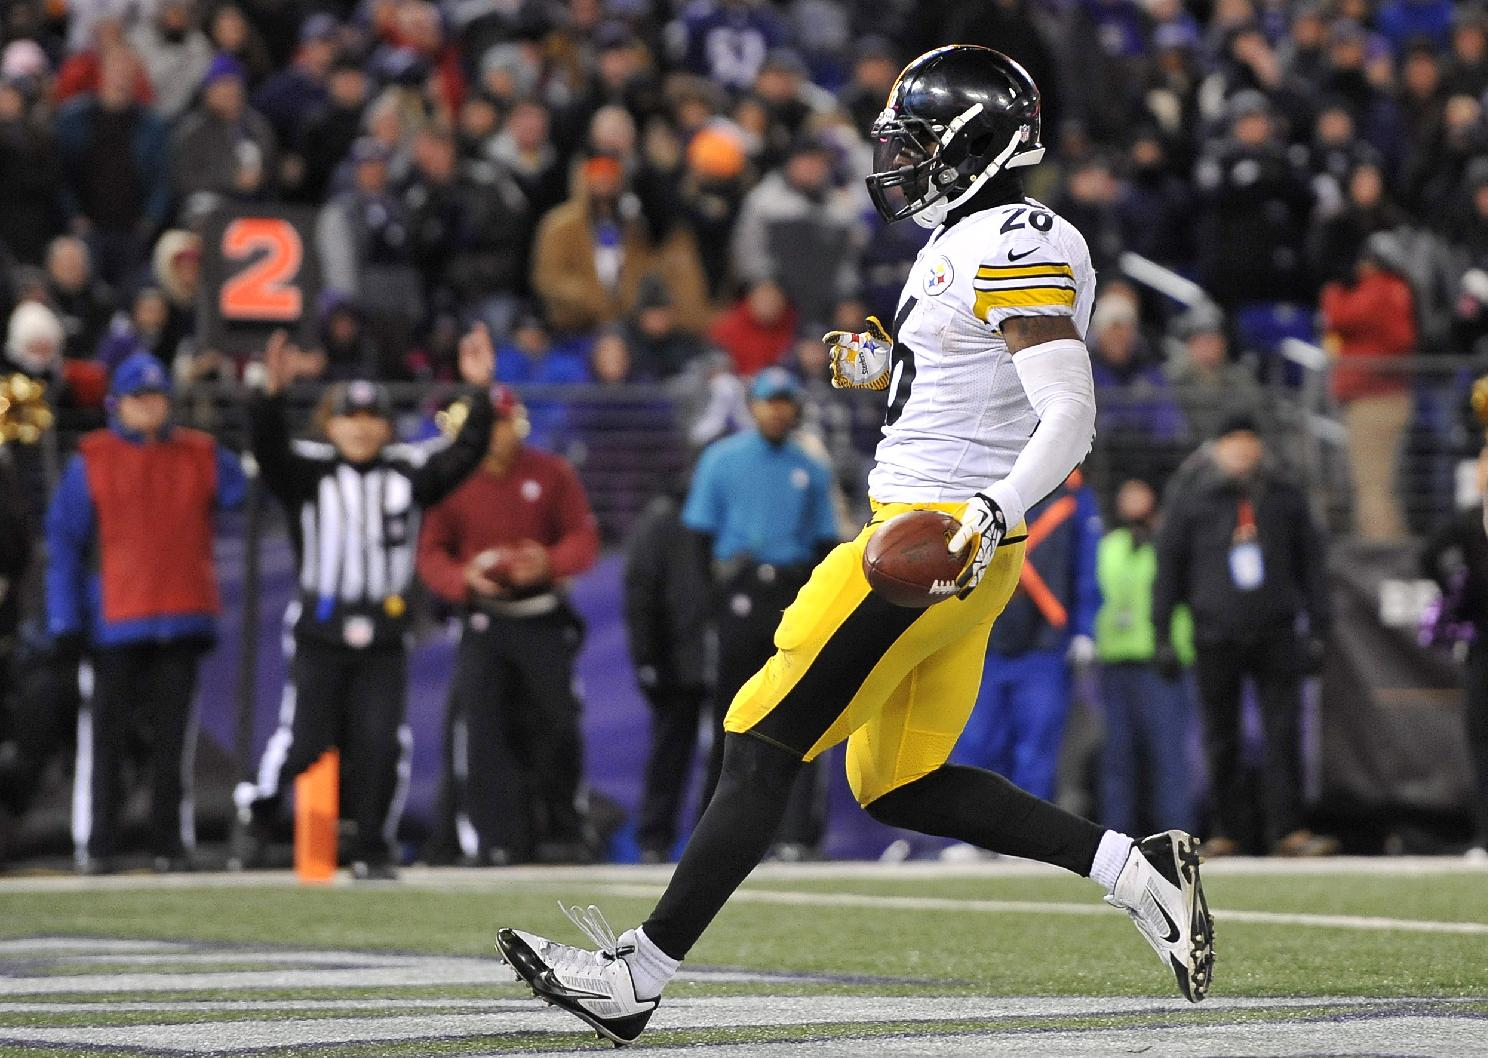 Pittsburgh Steelers running back Le'Veon Bell runs into the end zone for a touchdown in the second half of an NFL football game against the Baltimore Ravens, Thursday, Nov. 28, 2013, in Baltimore